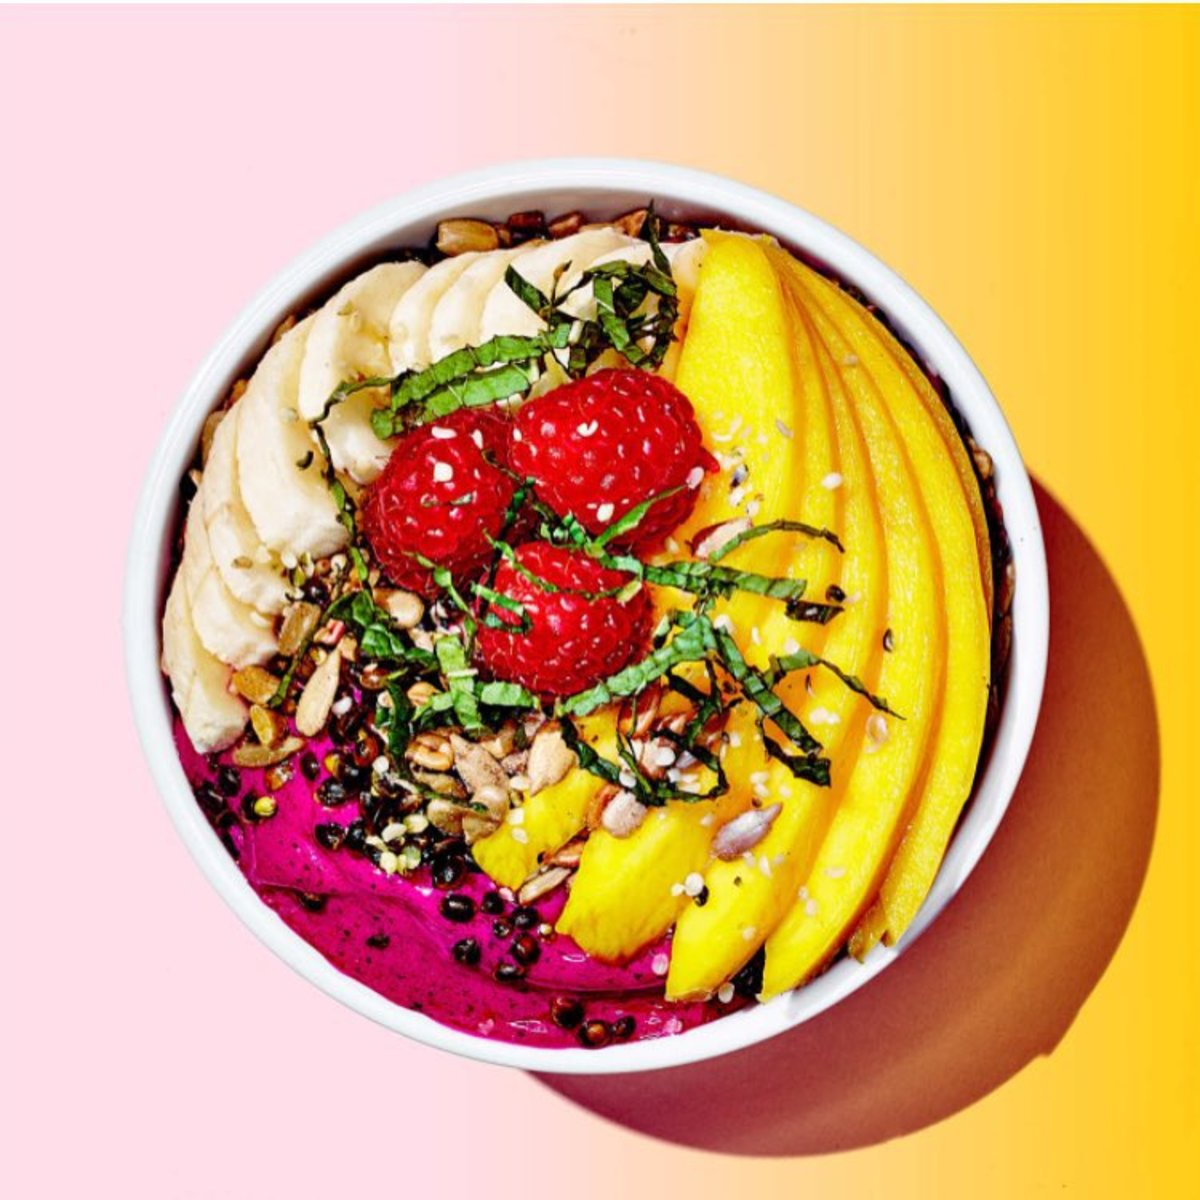 How To Make Healthy and Tasty Smoothie Bowls